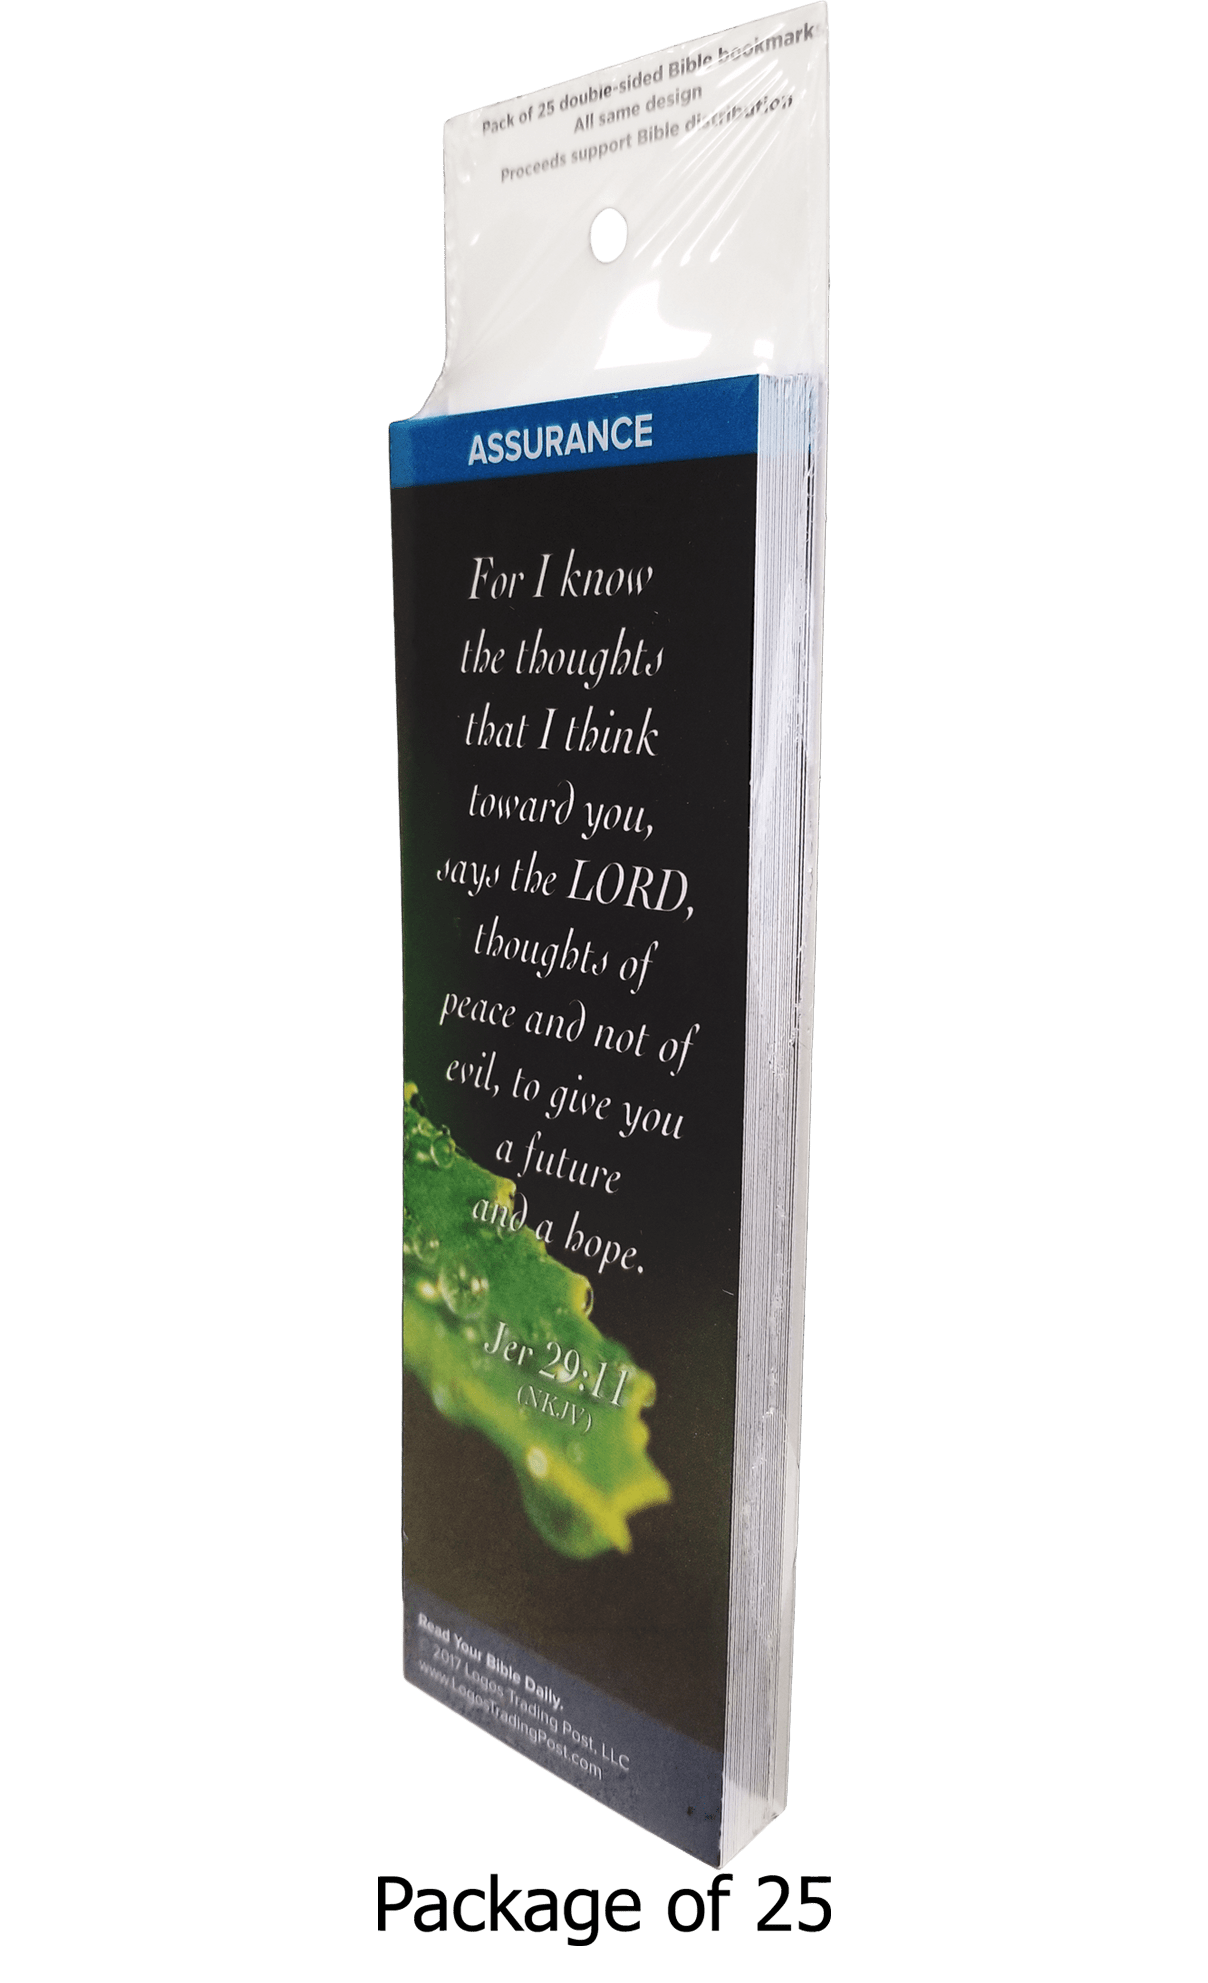 For I Know the Thoughts That I Think Toward You Says the Lord Bookmarks, Pack of 25 - Logos Trading Post, Christian Gift